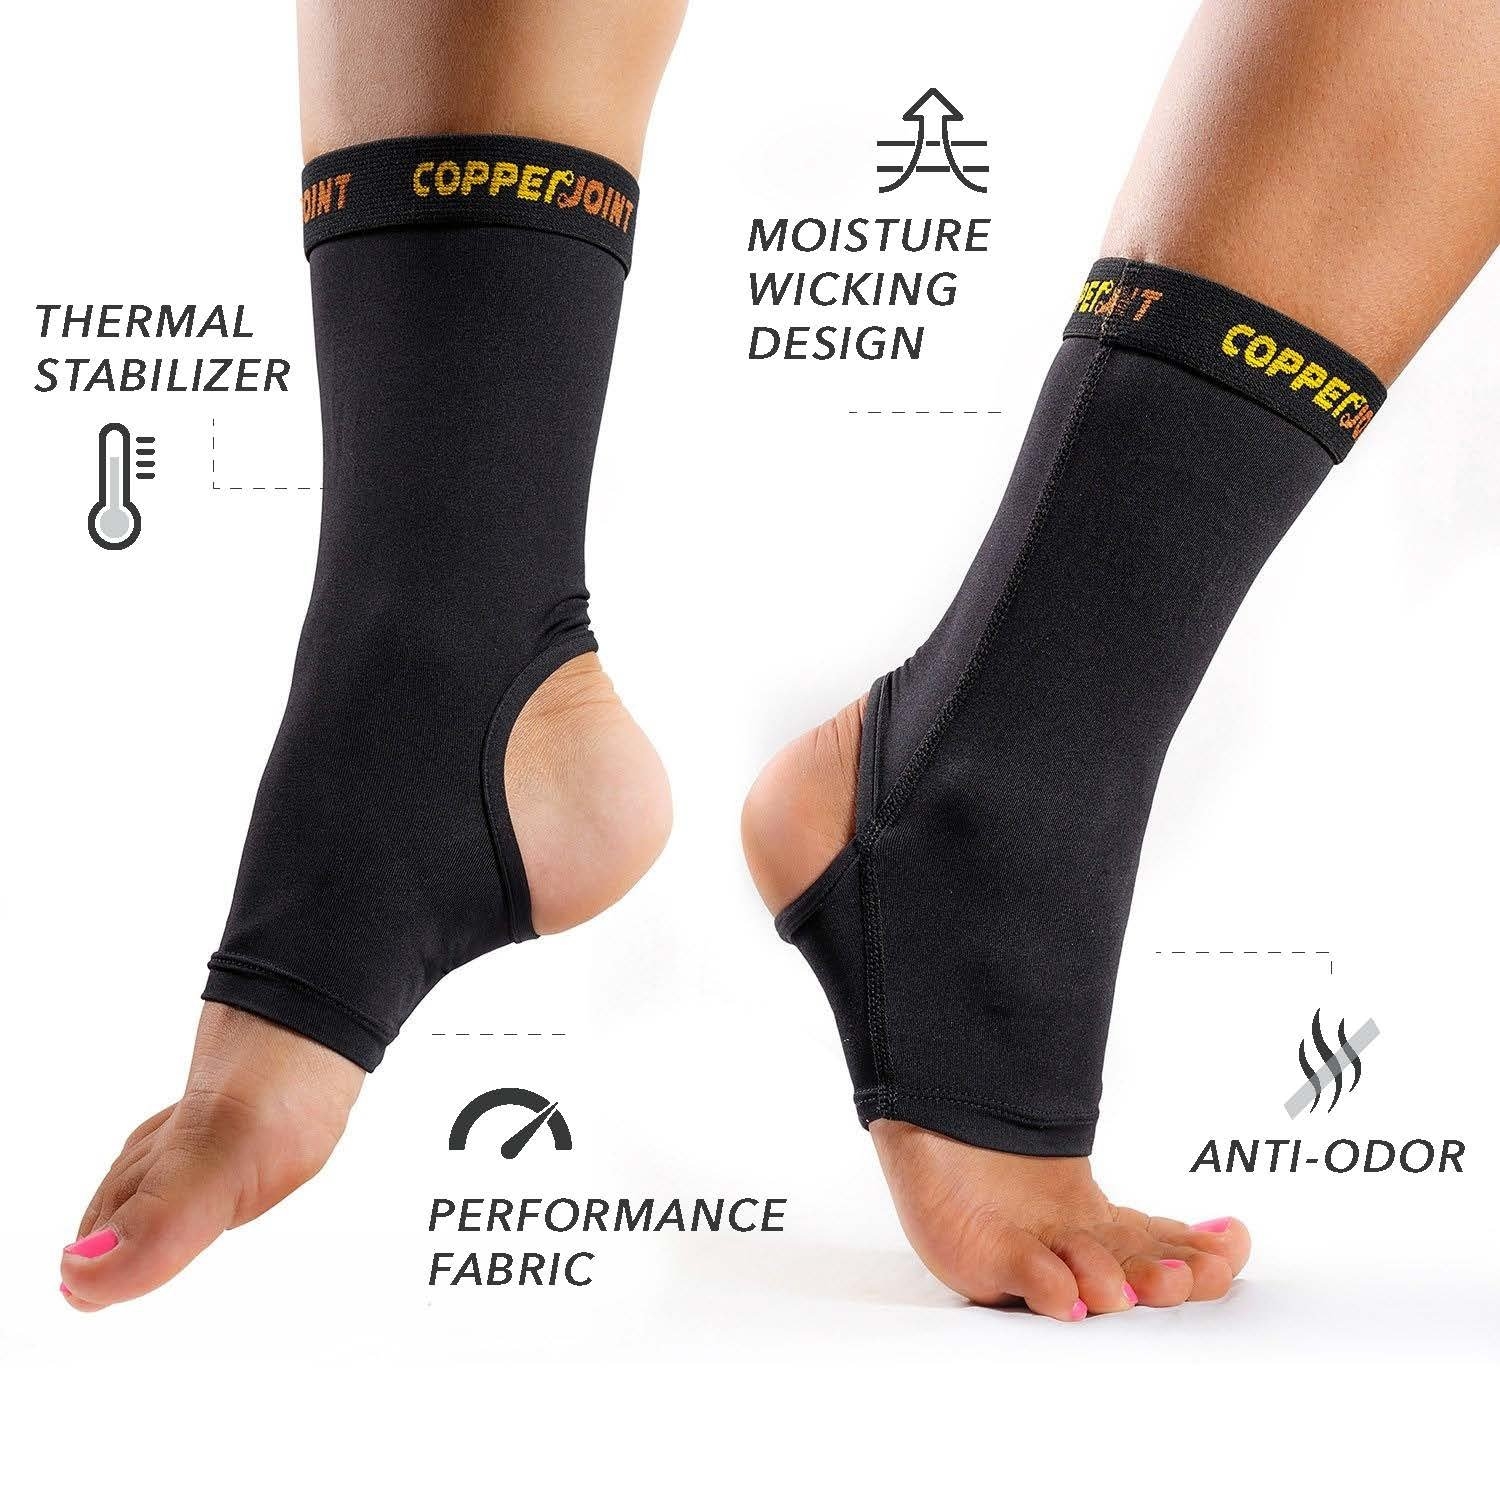 CopperJoint Copper-Infused Compression Ankle Sleeve, High-Performance, Breathable Design Provides Comfortable and Durable Joint Support for All Lifestyles, Single Sleeve (Medium) by CopperJoint (Image #3)